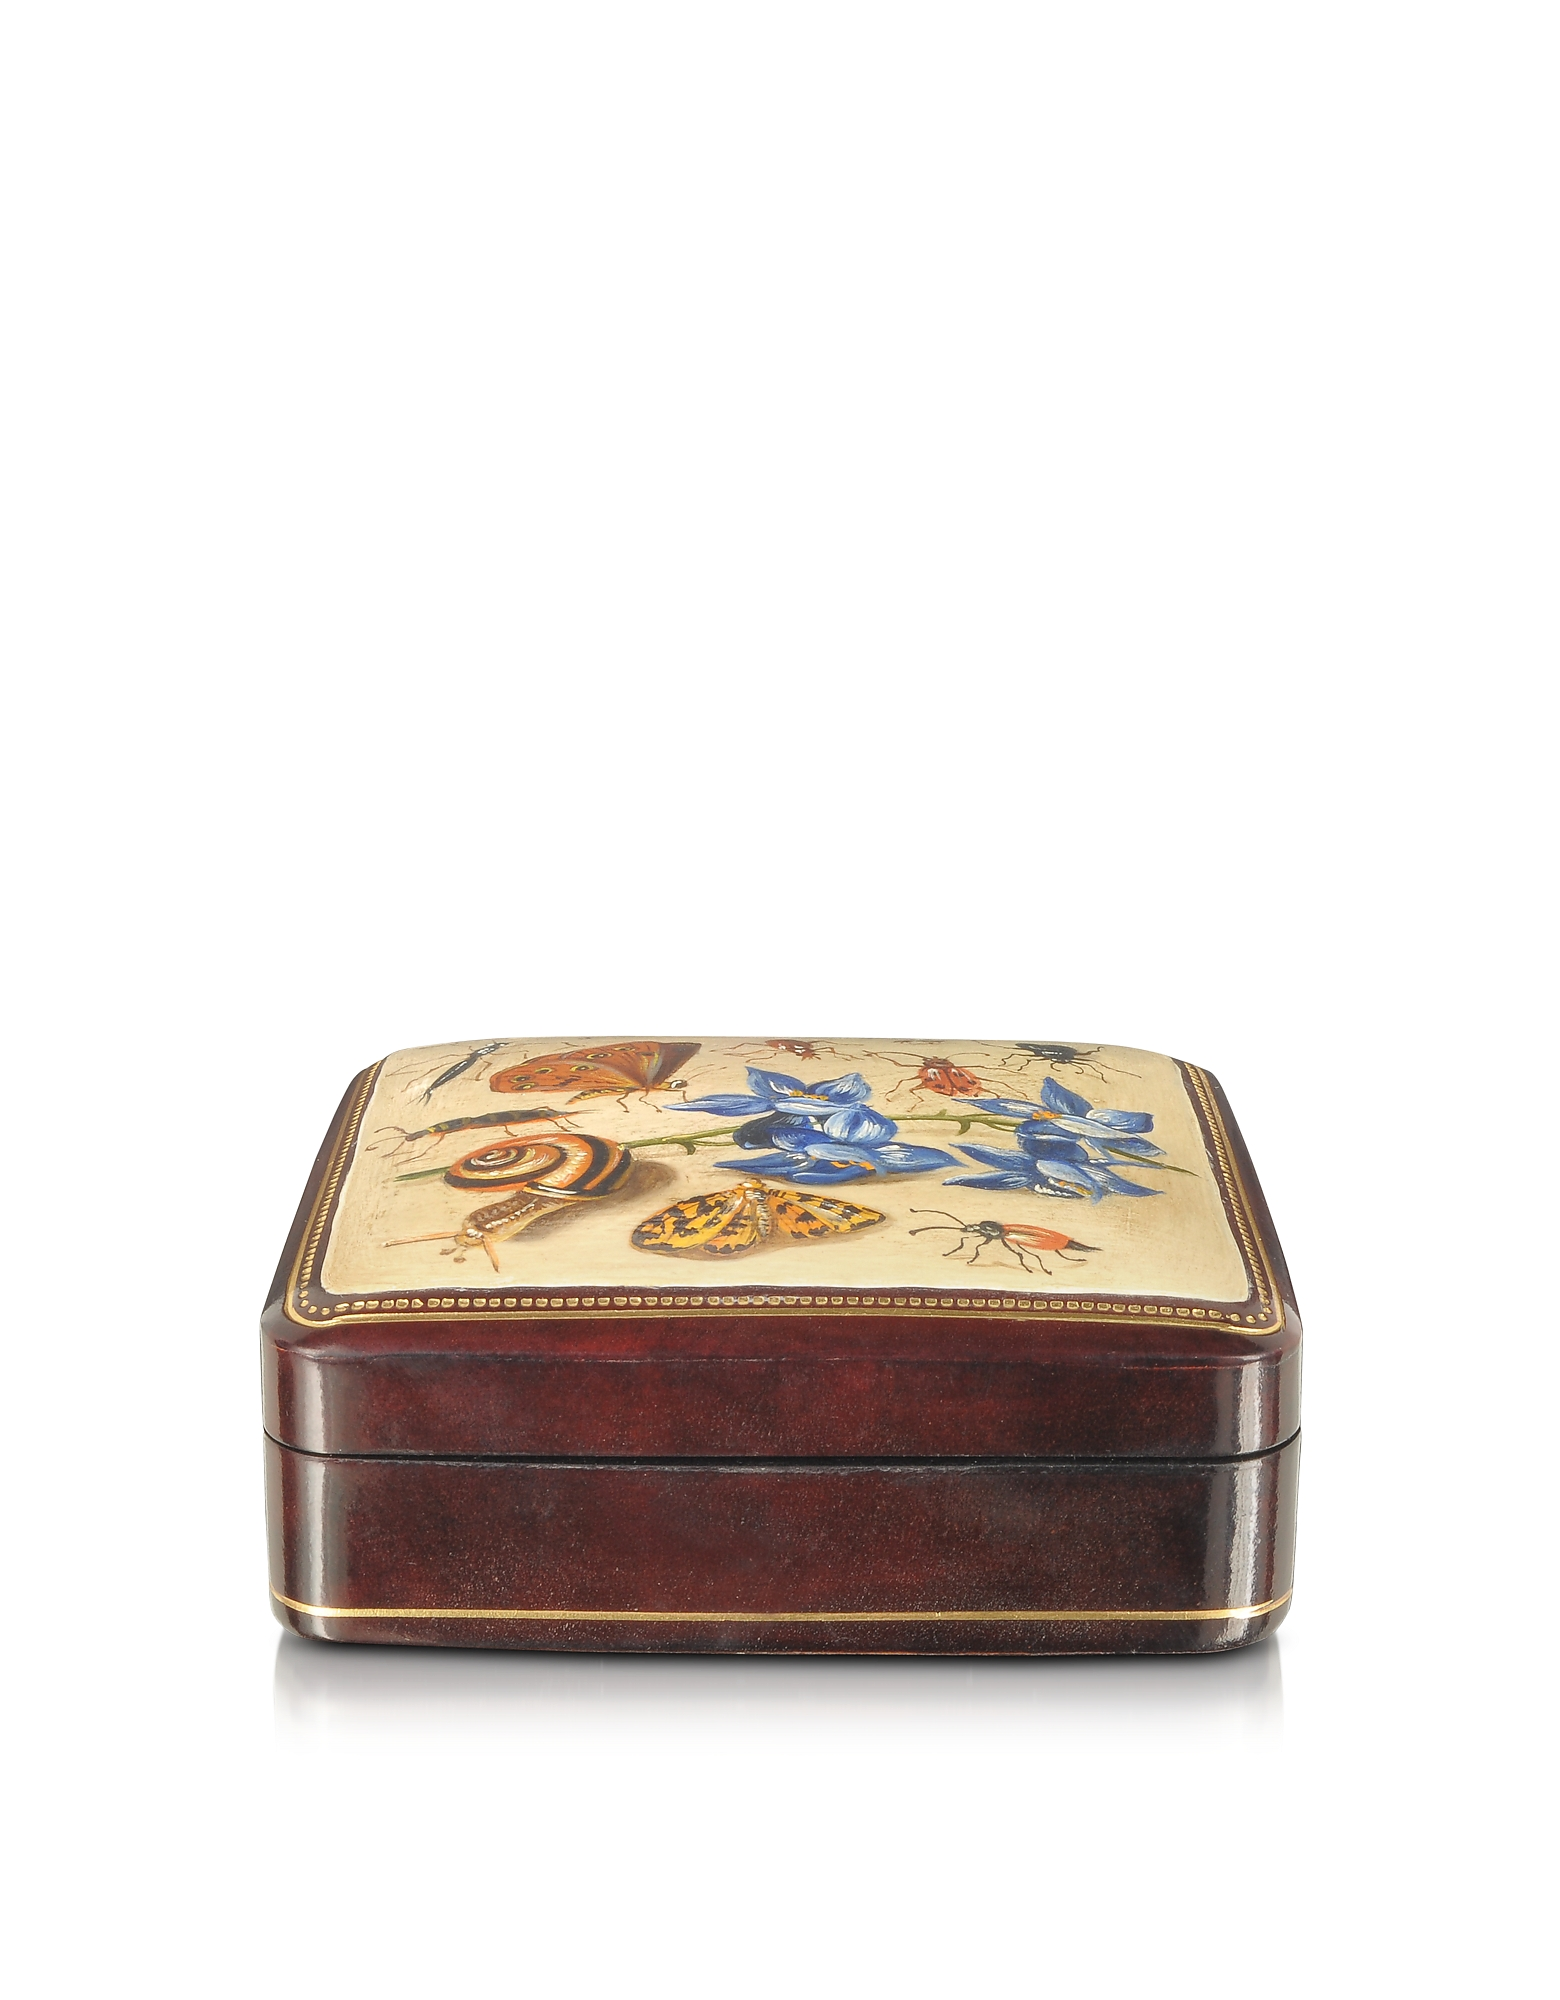 Oil on Leather Mini Jewelry Box w/Light Blue Flower, Brown